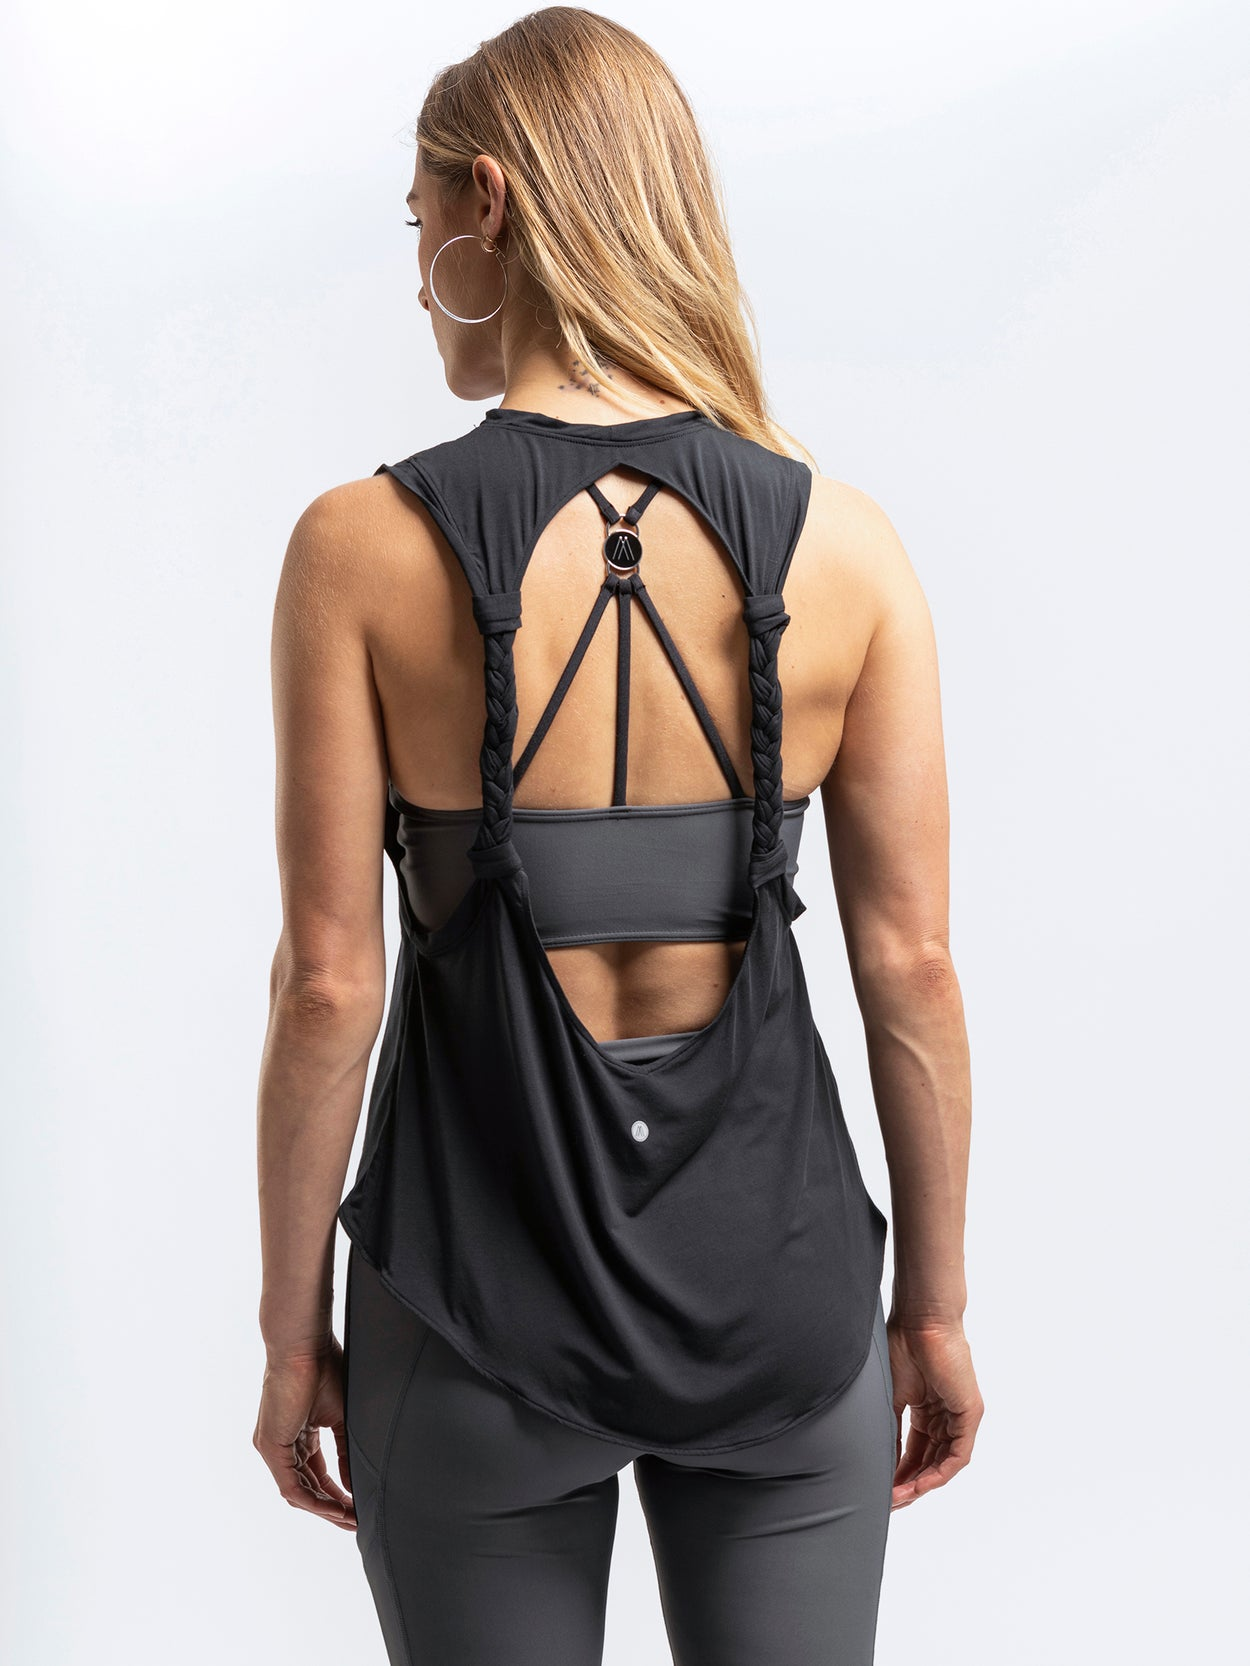 Twisted tank workout tank tops for women by Amari Active